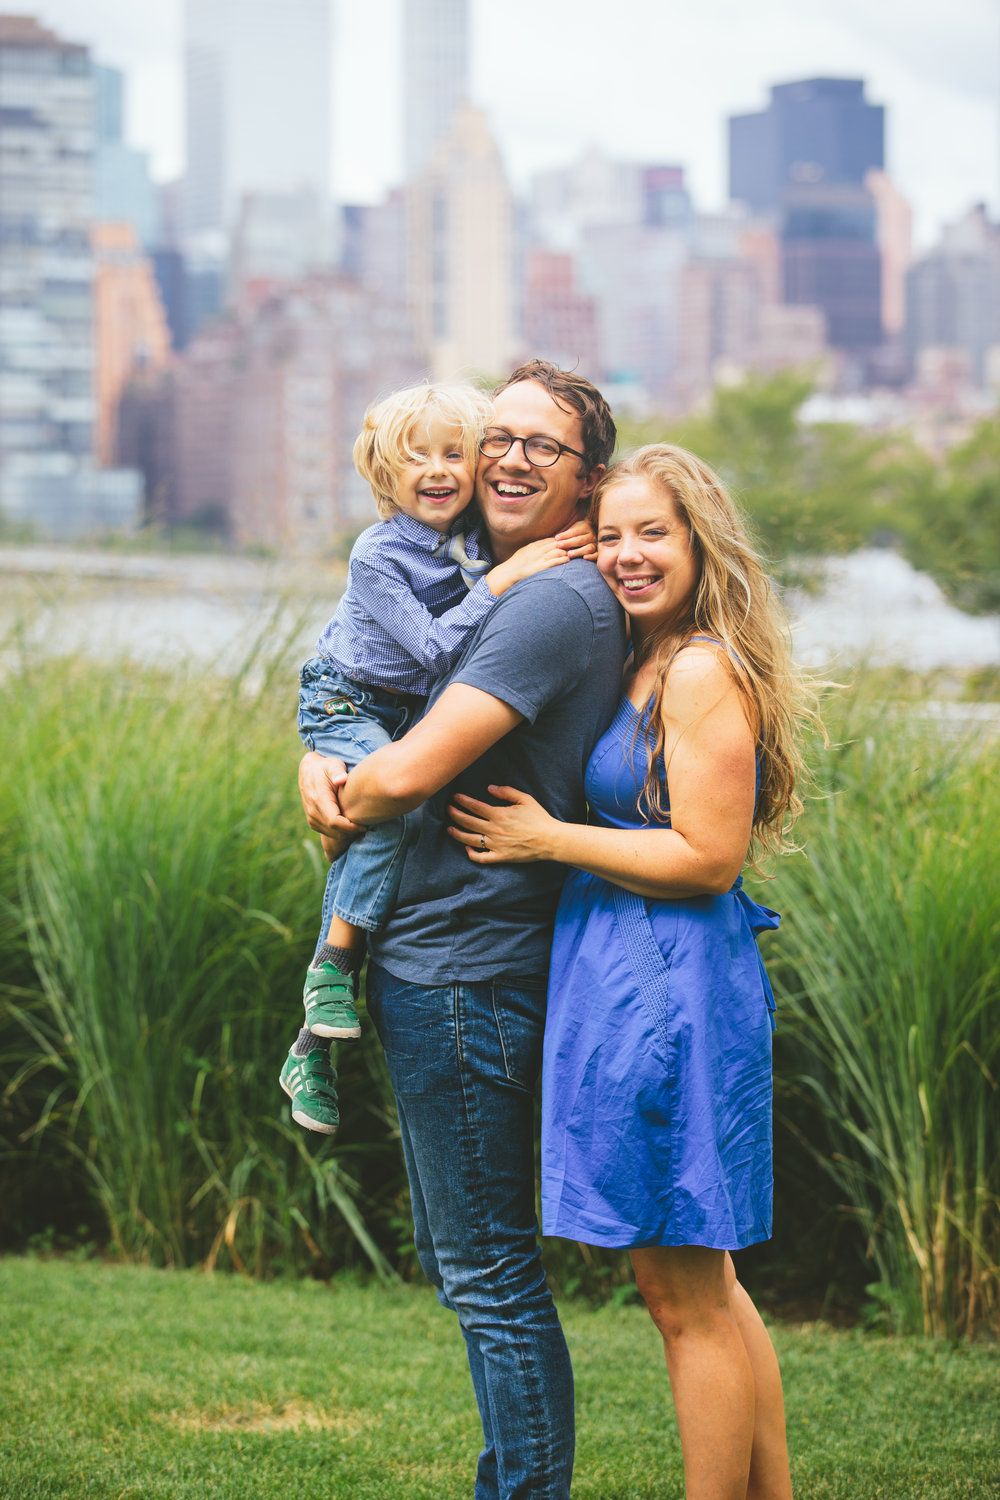 Family photoshoot long island city queens new york swoboda family joyce films cinematography